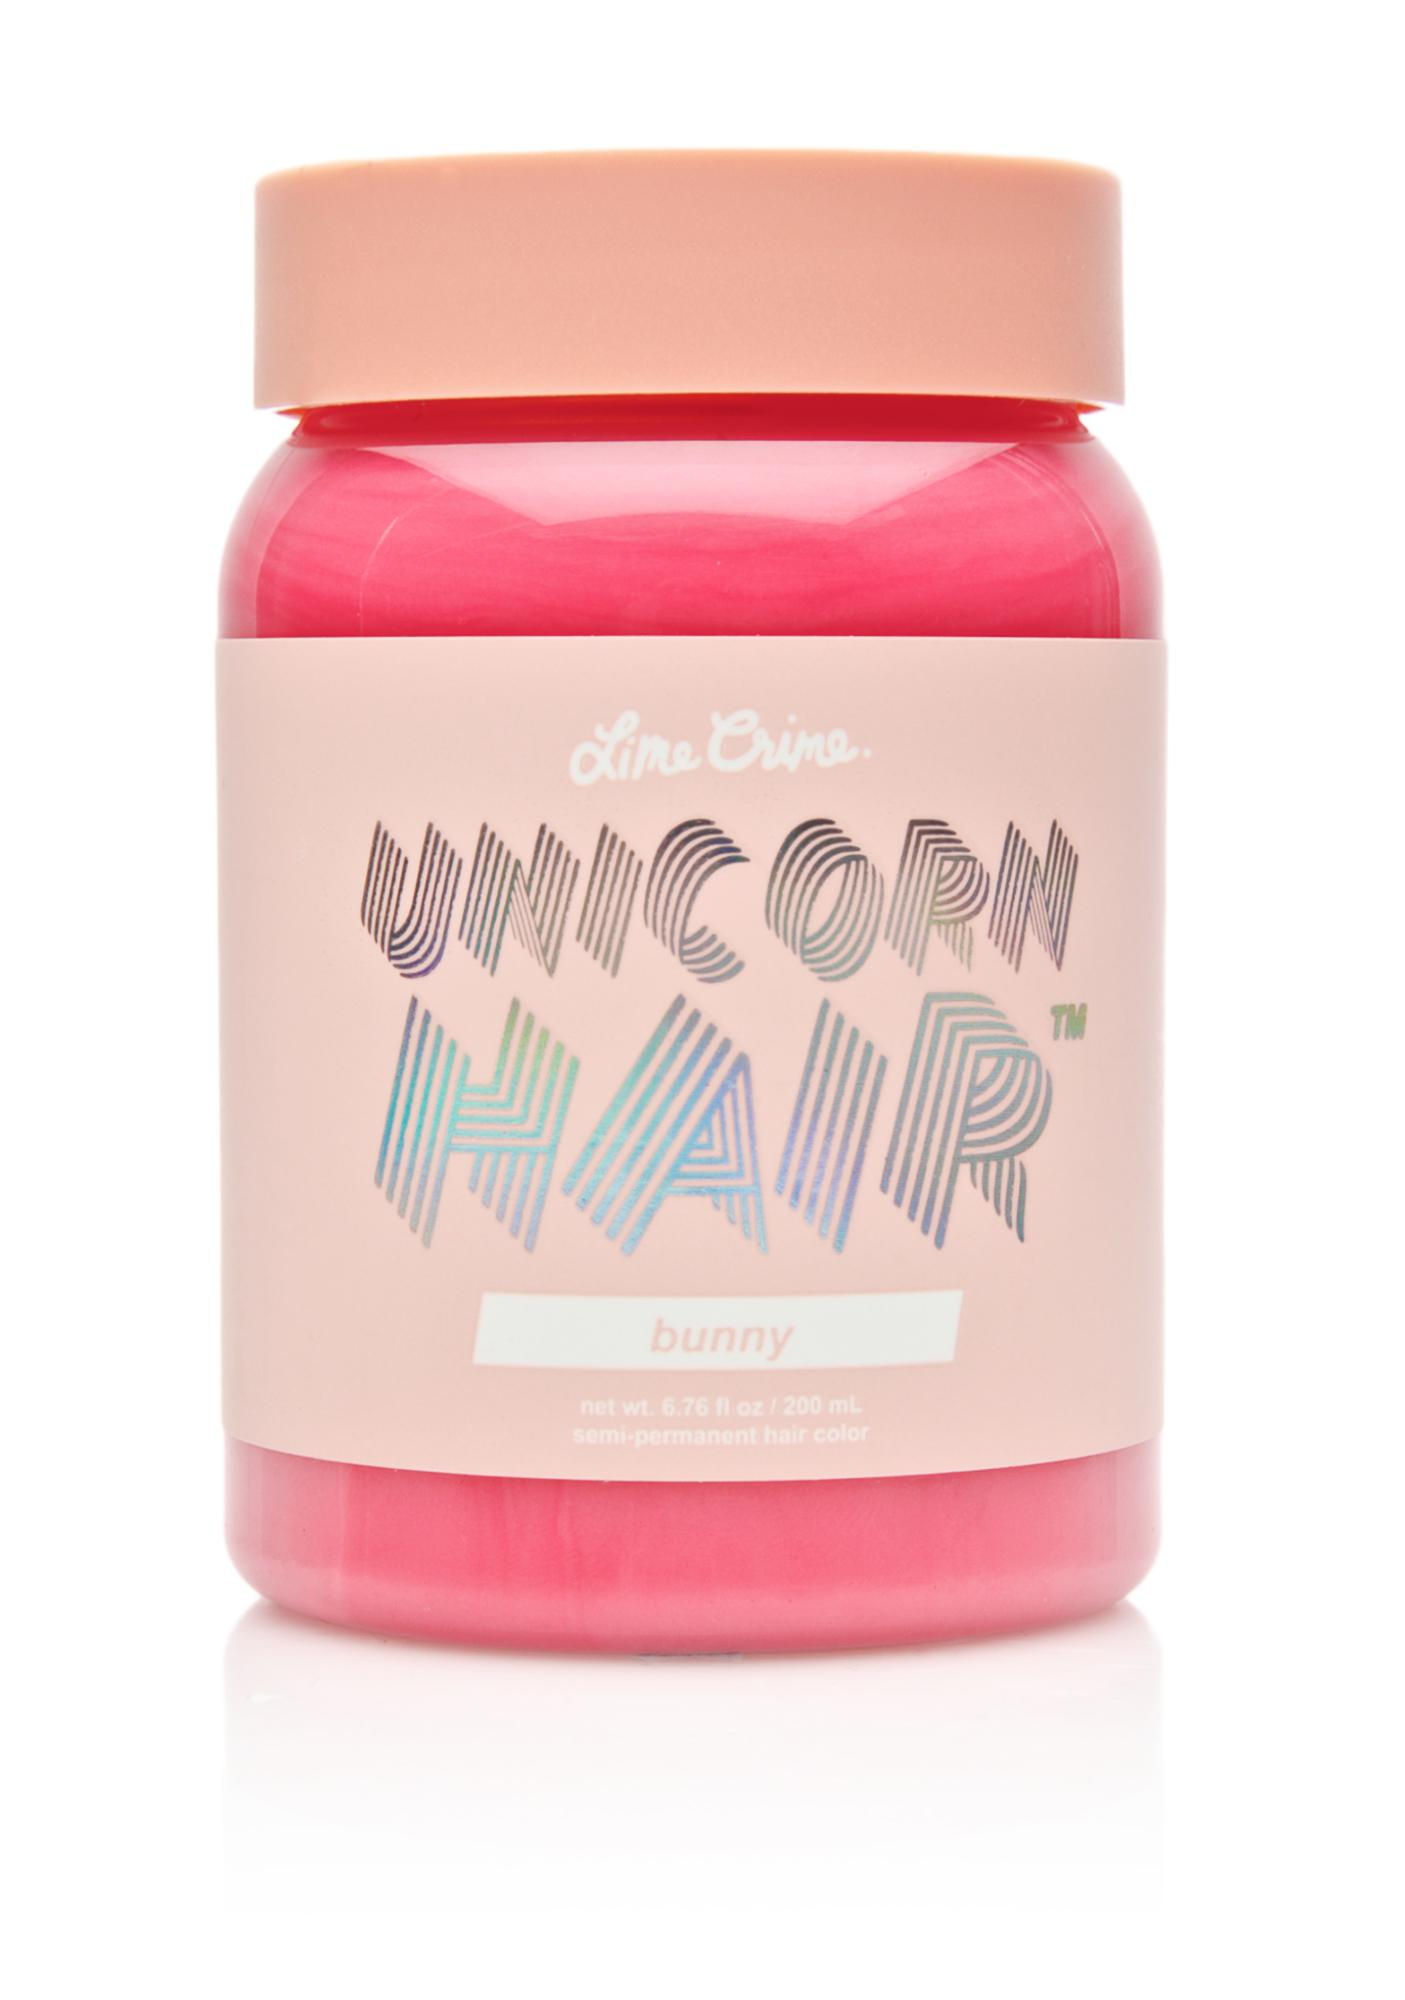 Lime Crime Bunny Unicorn Hair Dye